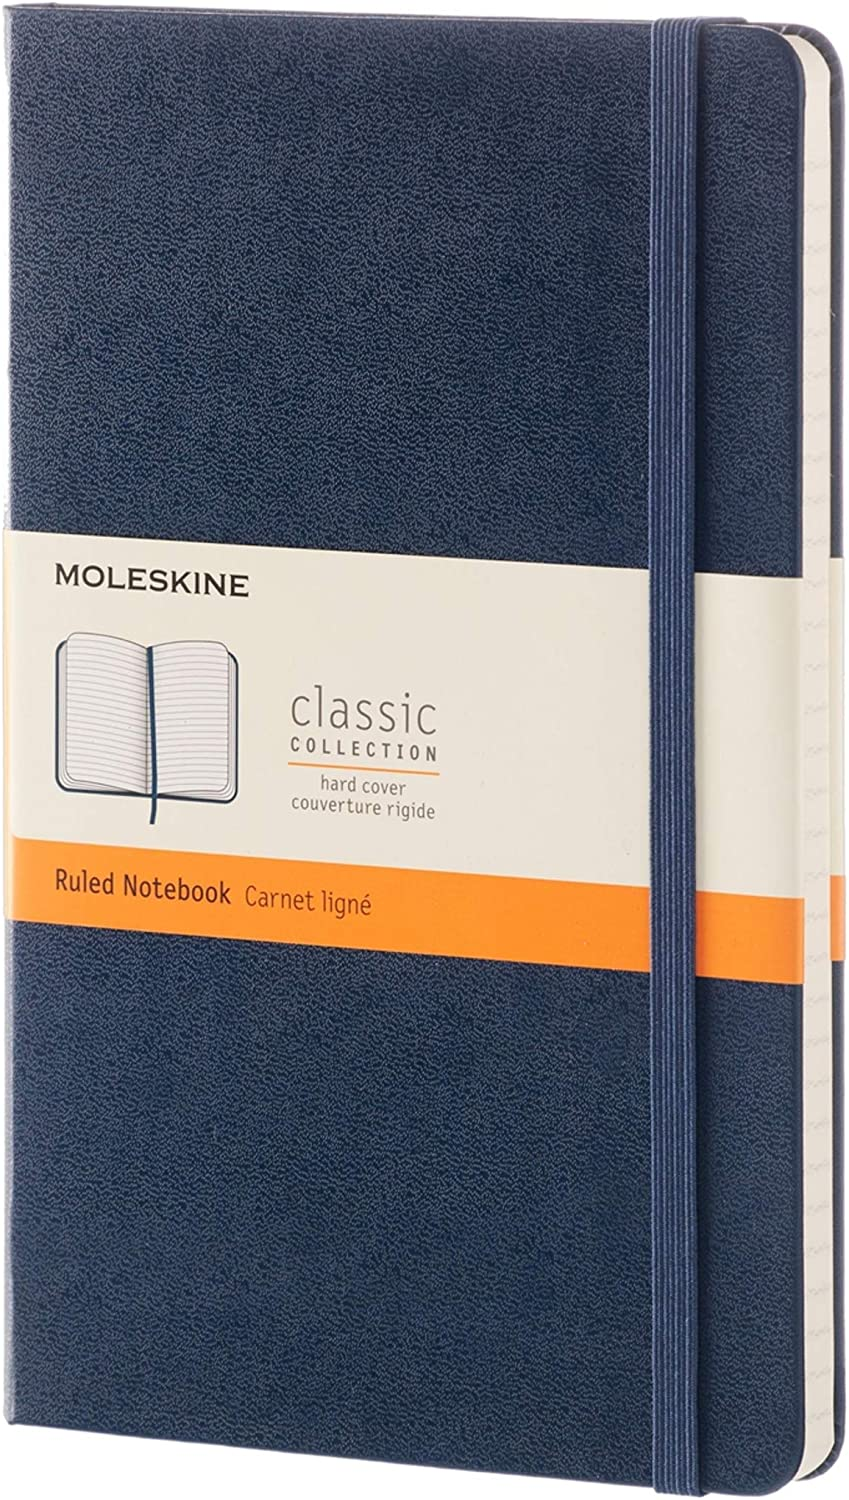 This is an image of a notebook in hardcover with garter closure.